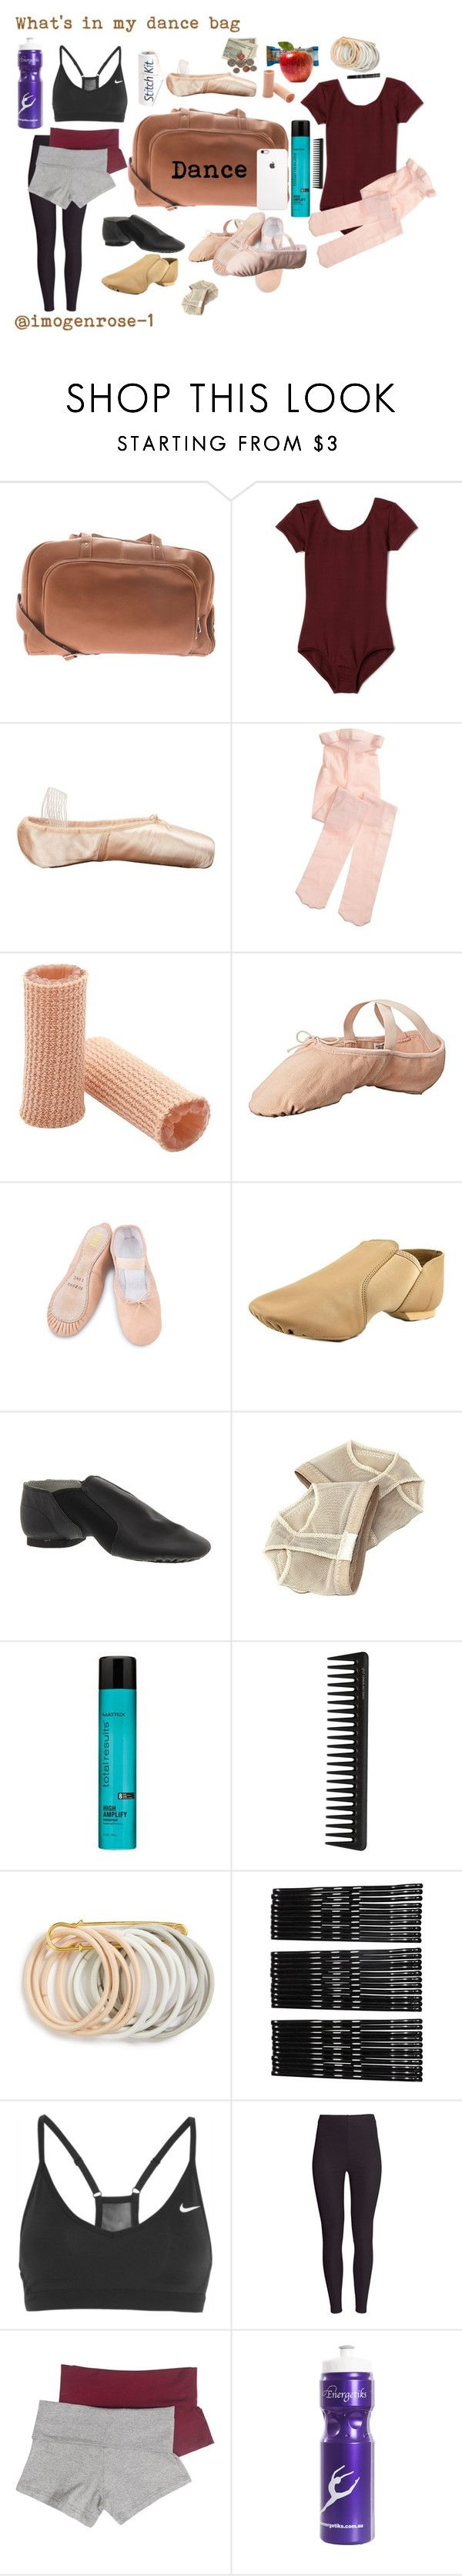 """""""What's in my dance bag"""" by imogenrose-1 ❤ liked on Polyvore featuring Piel Leather, Capezio, Sansha, Bloch Dance, Bloch, Matrix Biolage, GHD, Odeme, Monki and NIKE"""